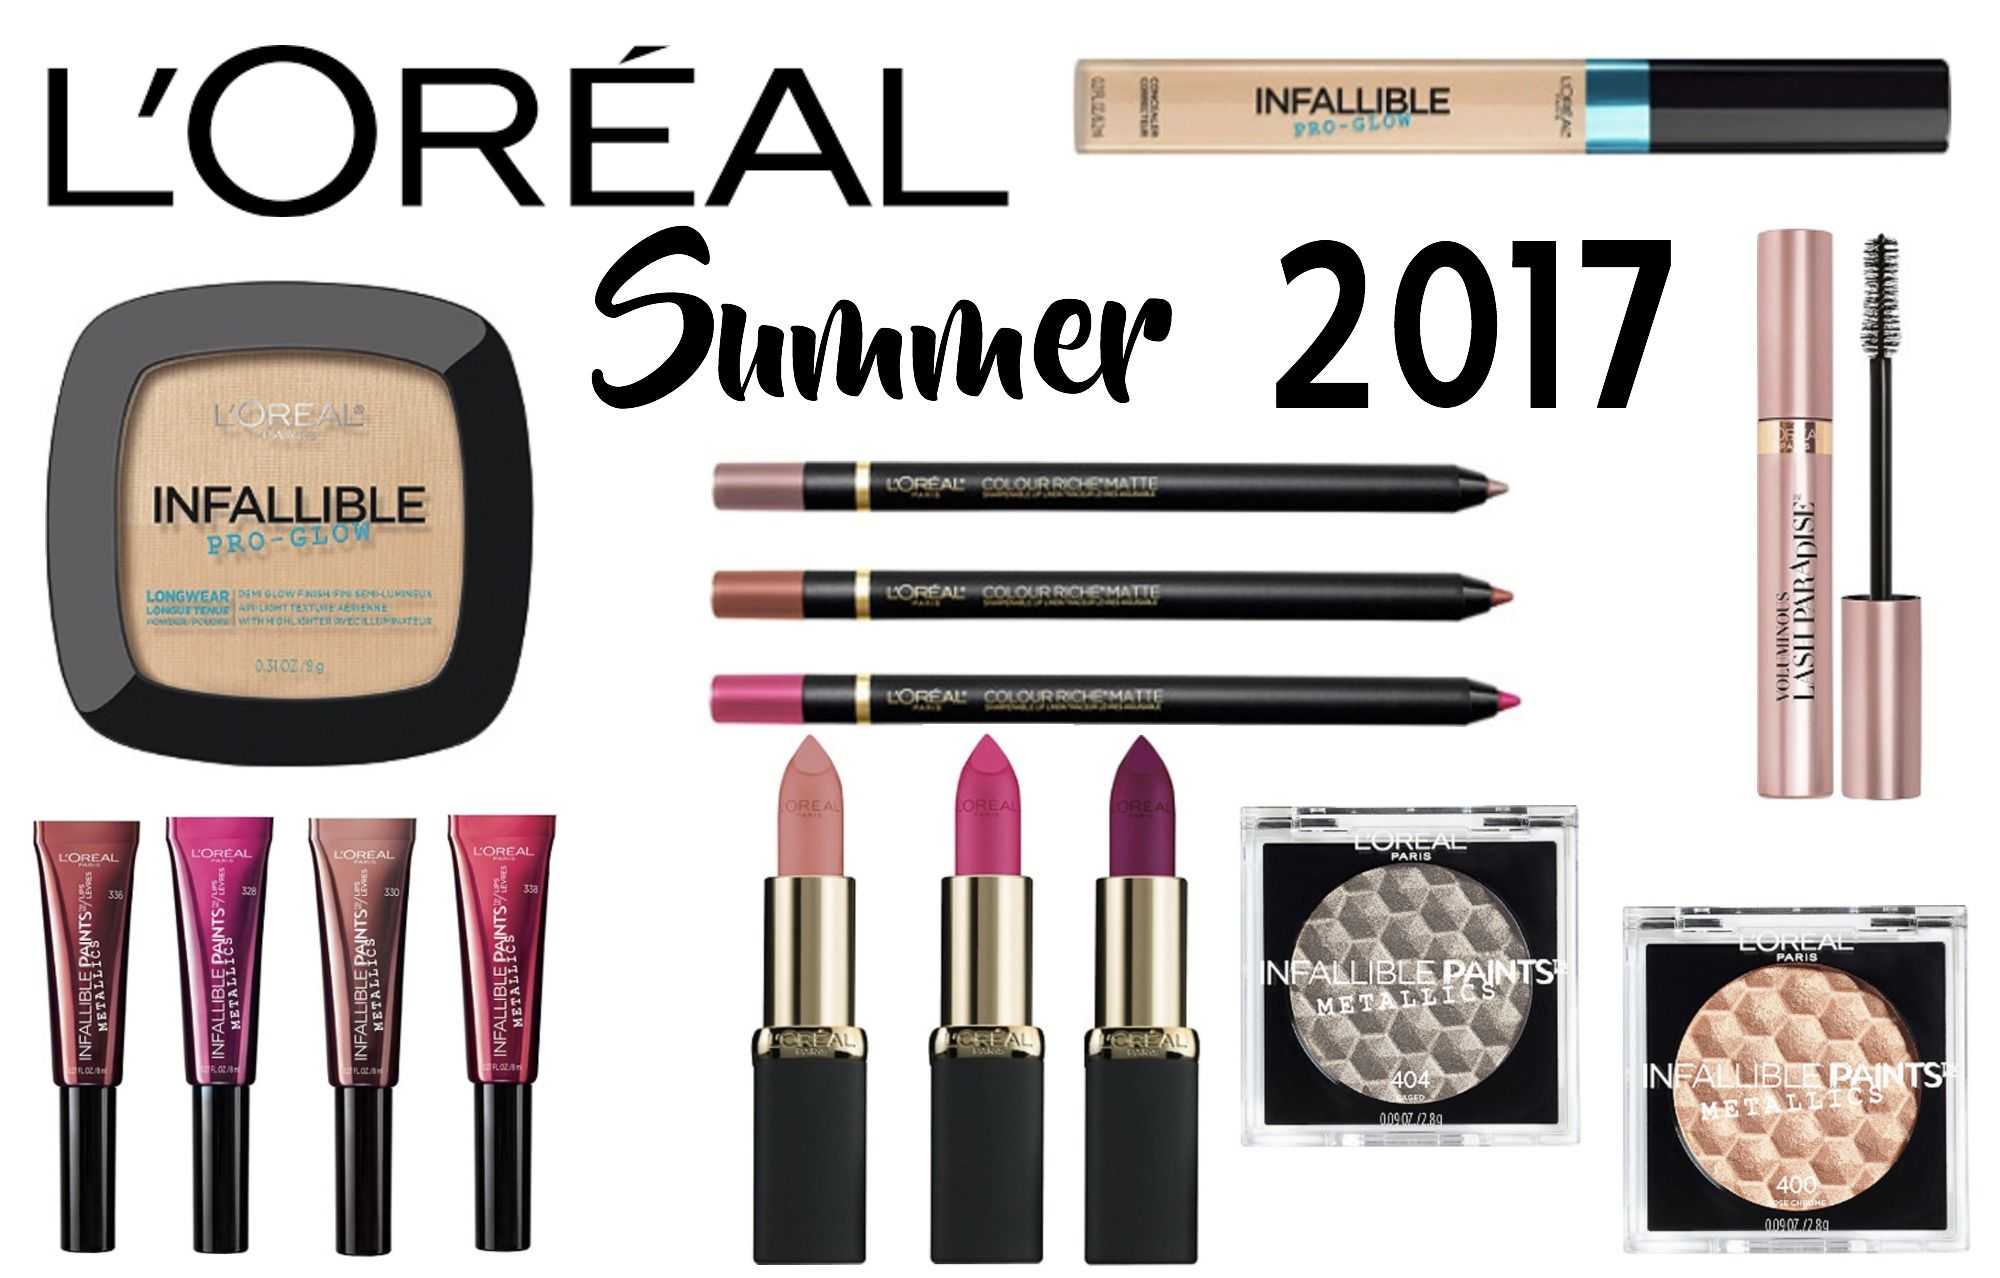 NEW L'ORÉAL Makeup Now Available at ULTA (Summer 2017